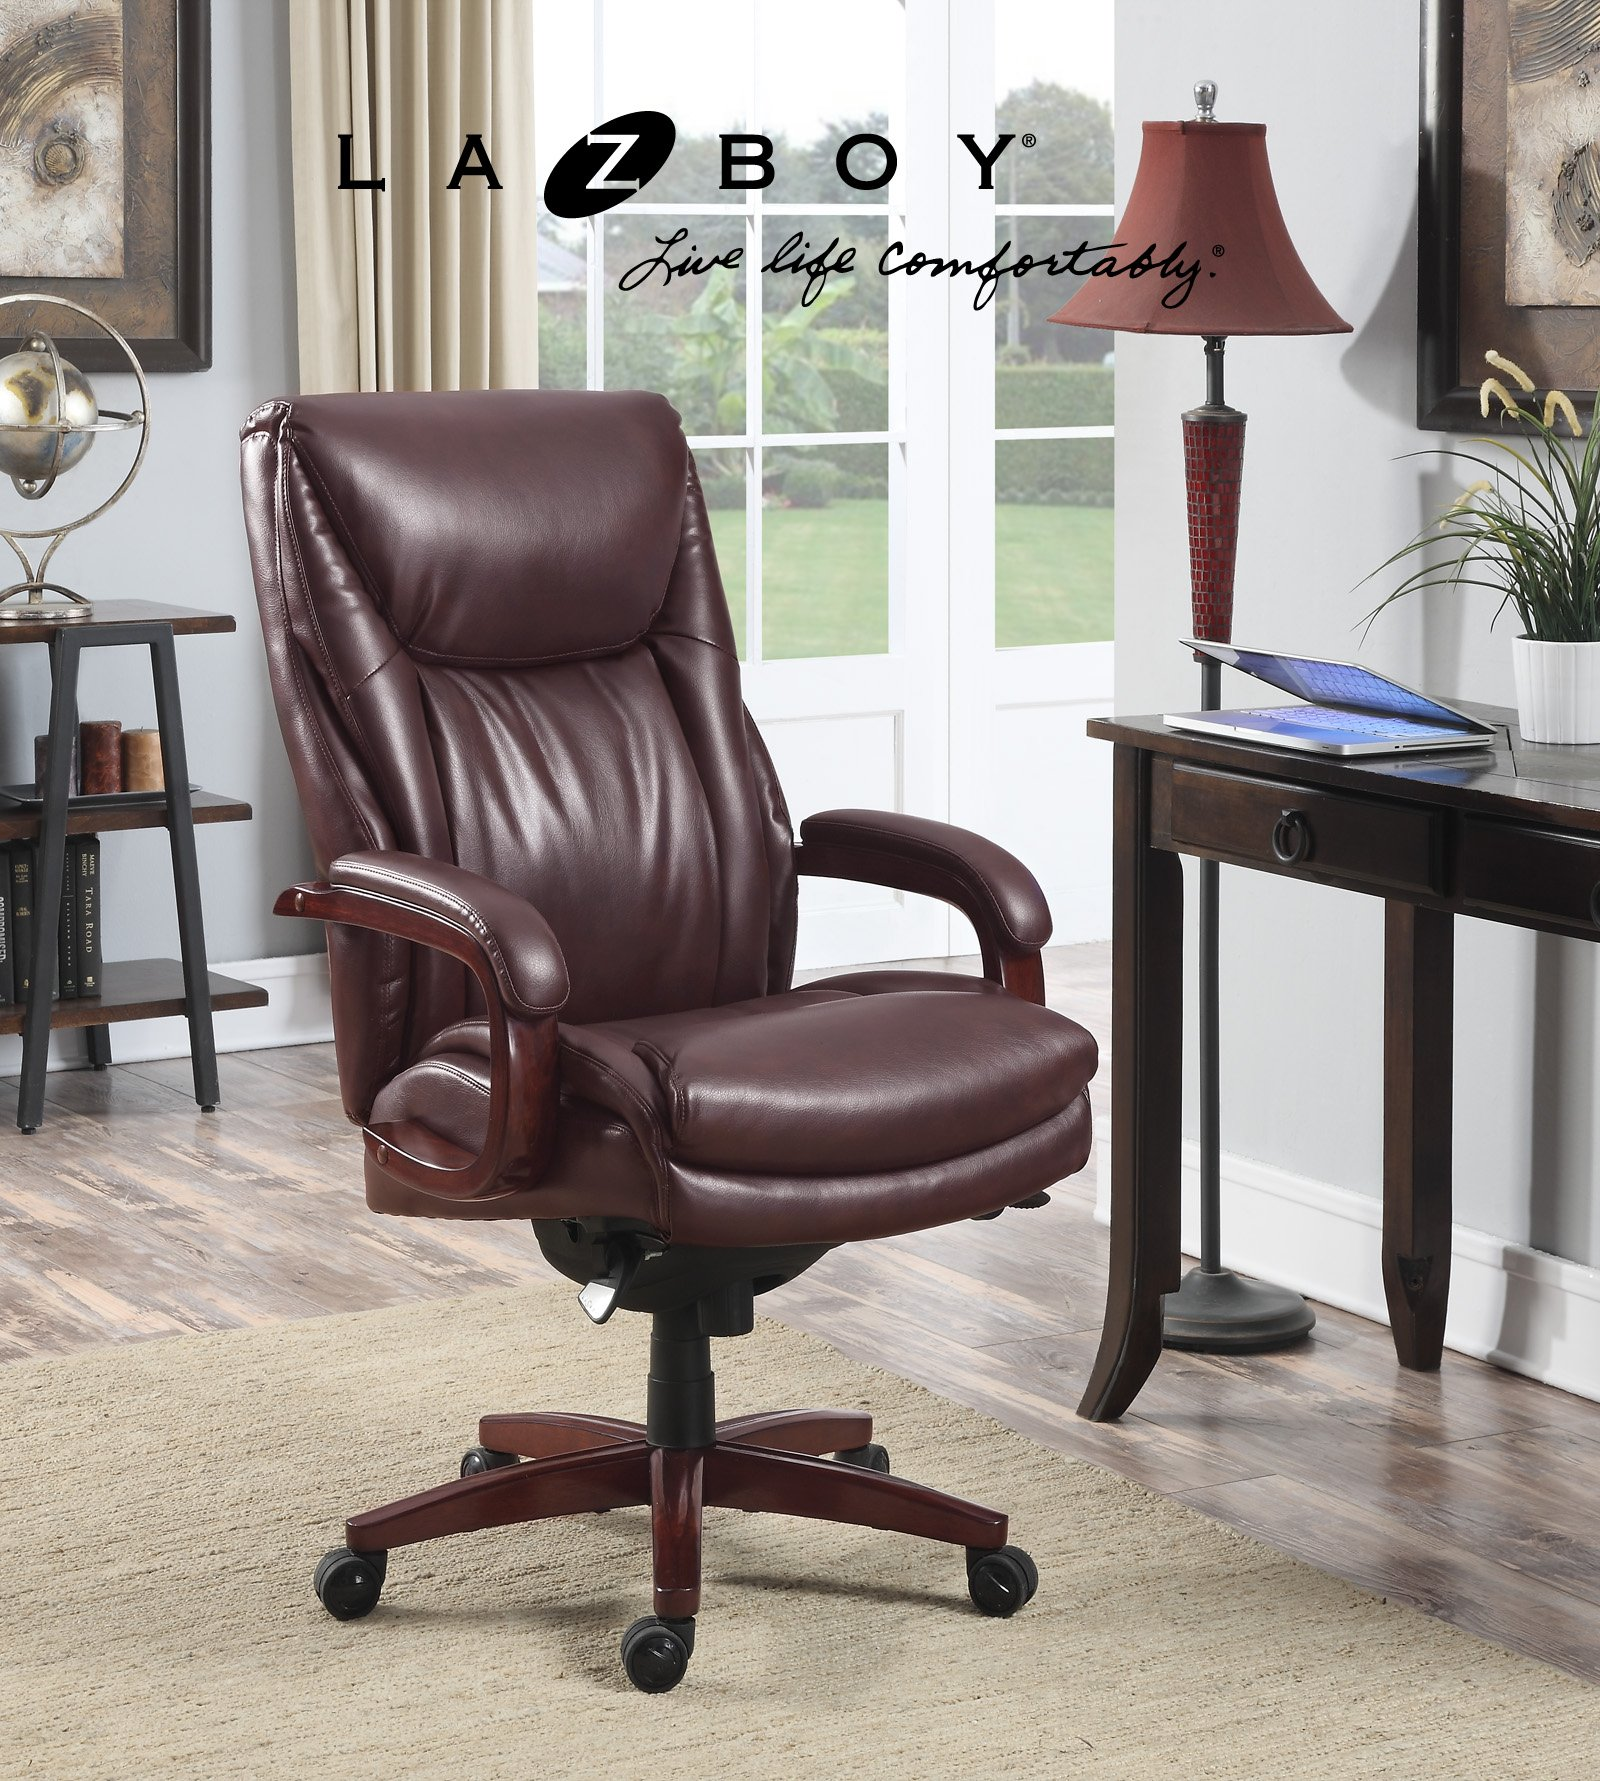 La Z Boy Edmonton Bonded Leather Office Chair, Coffee Brown by La-Z-Boy